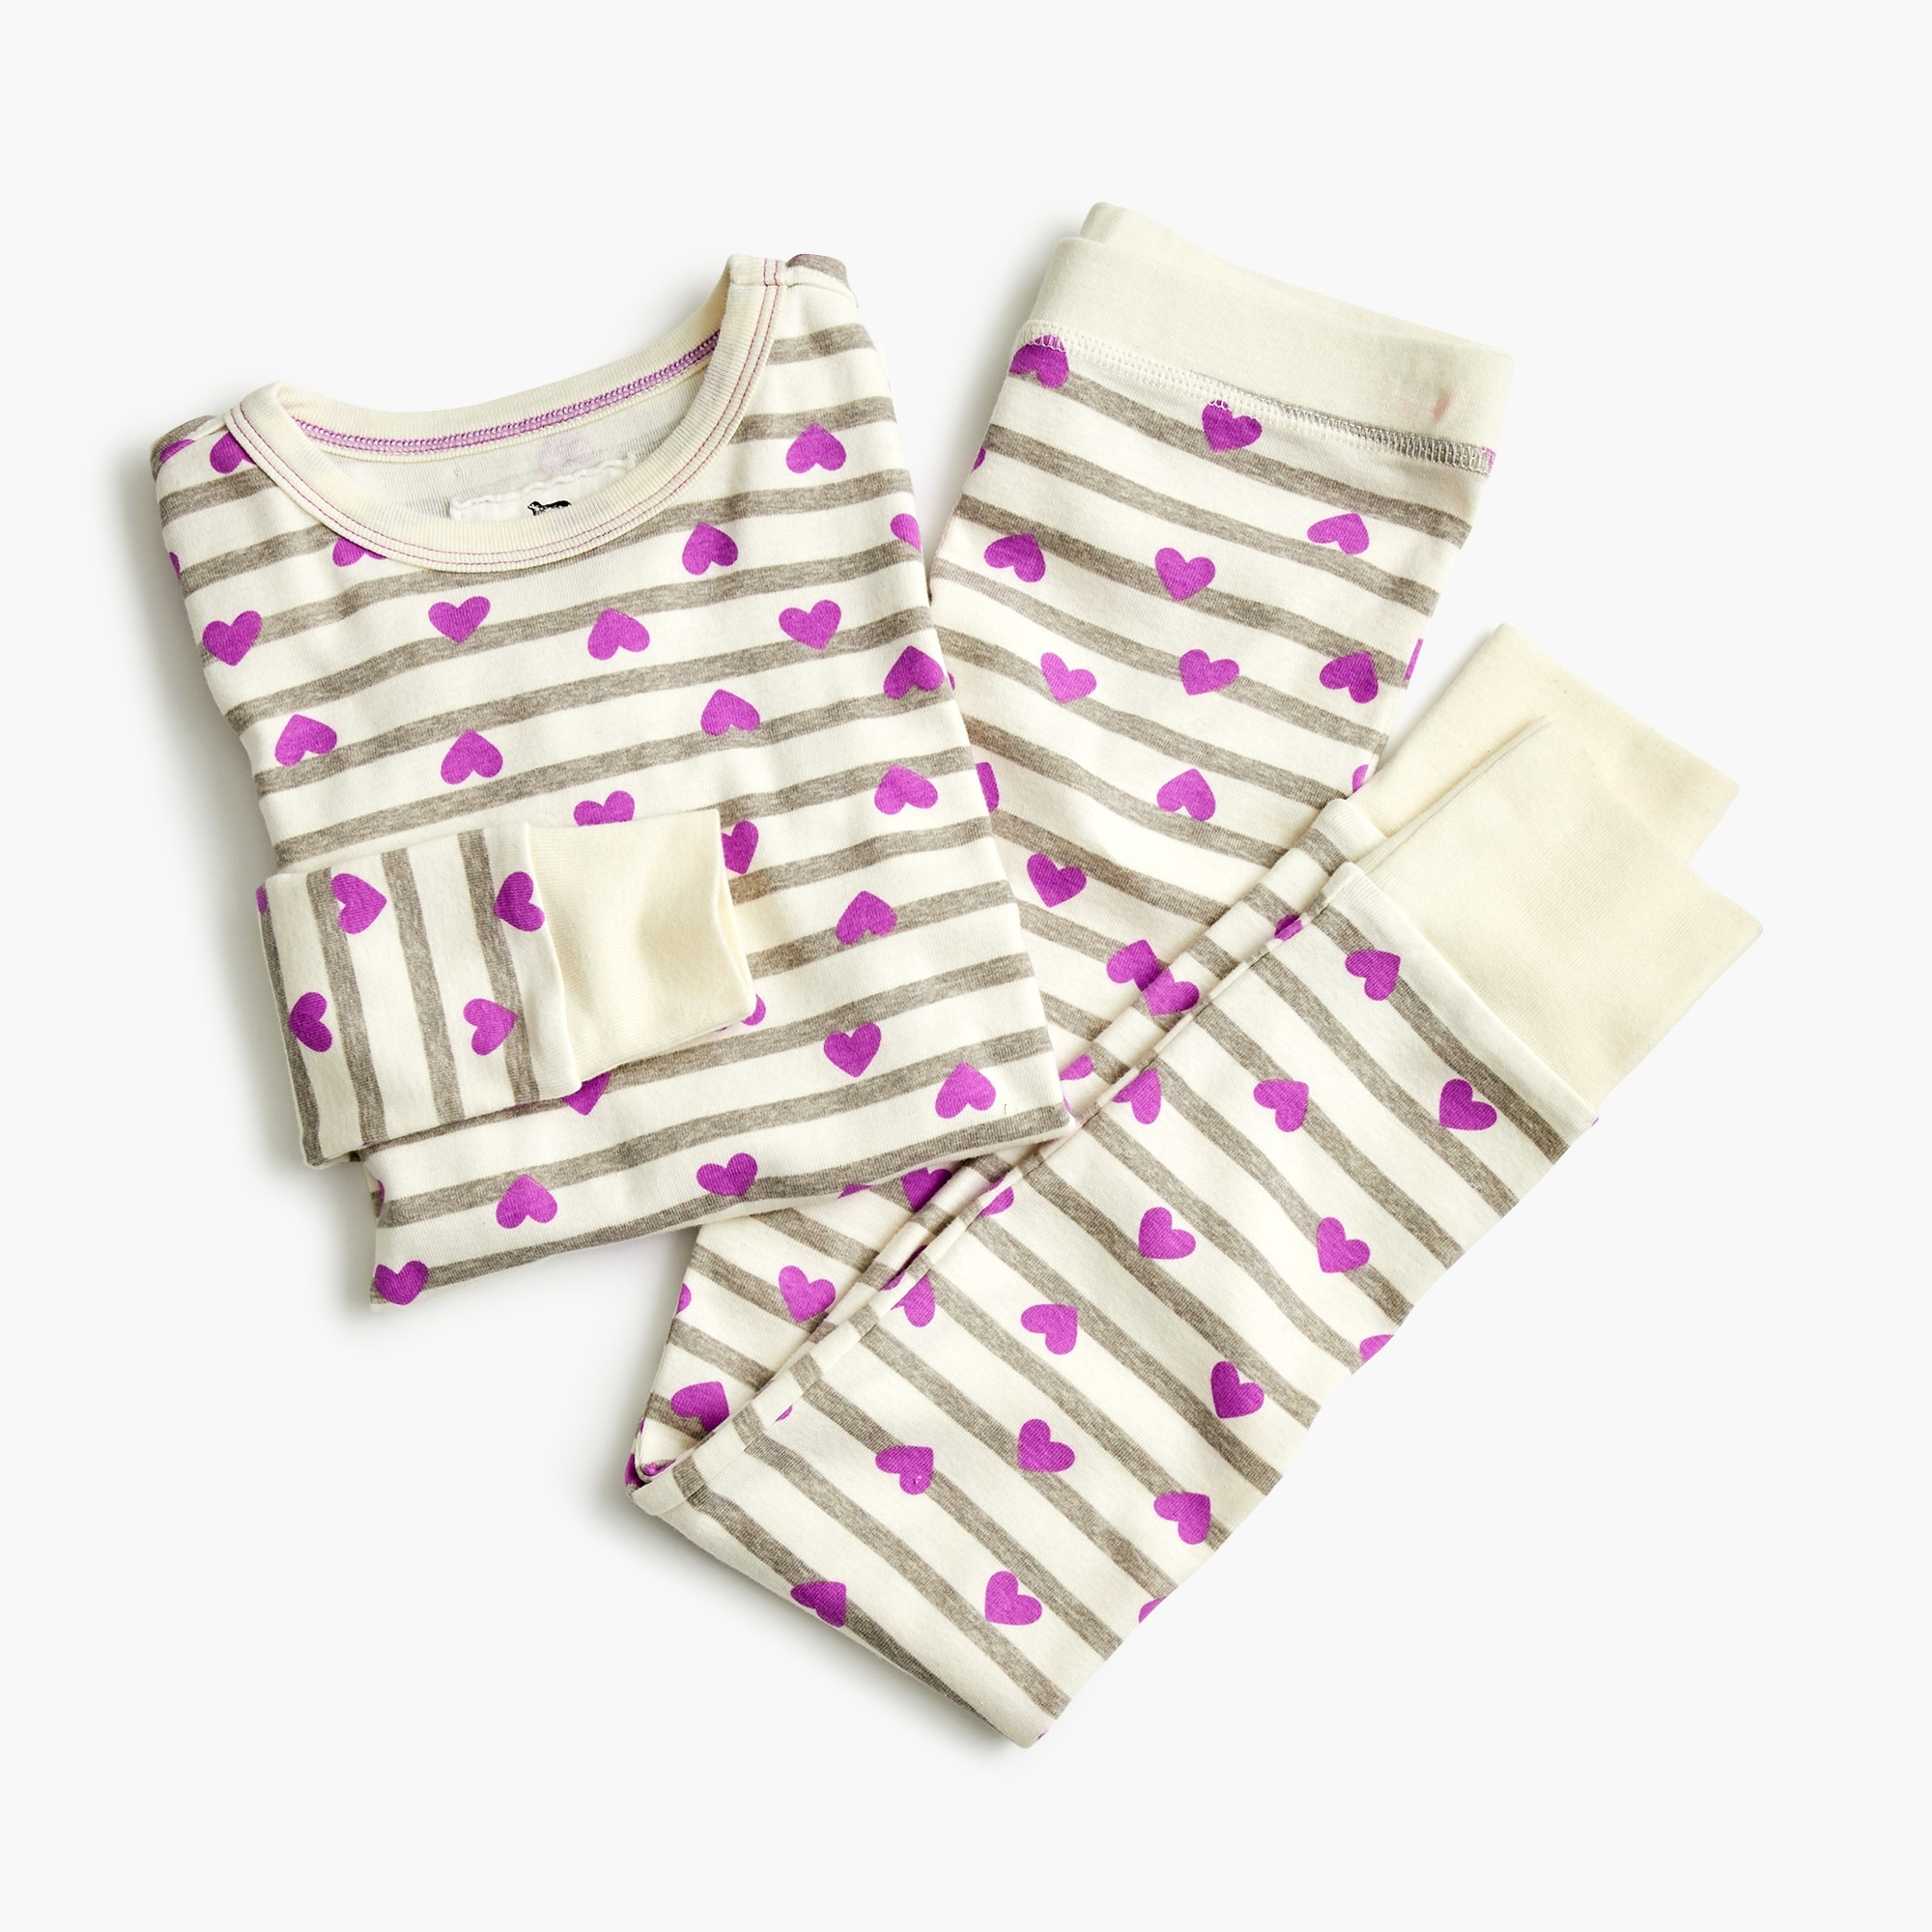 Girls' pajama set in hearts and stripes